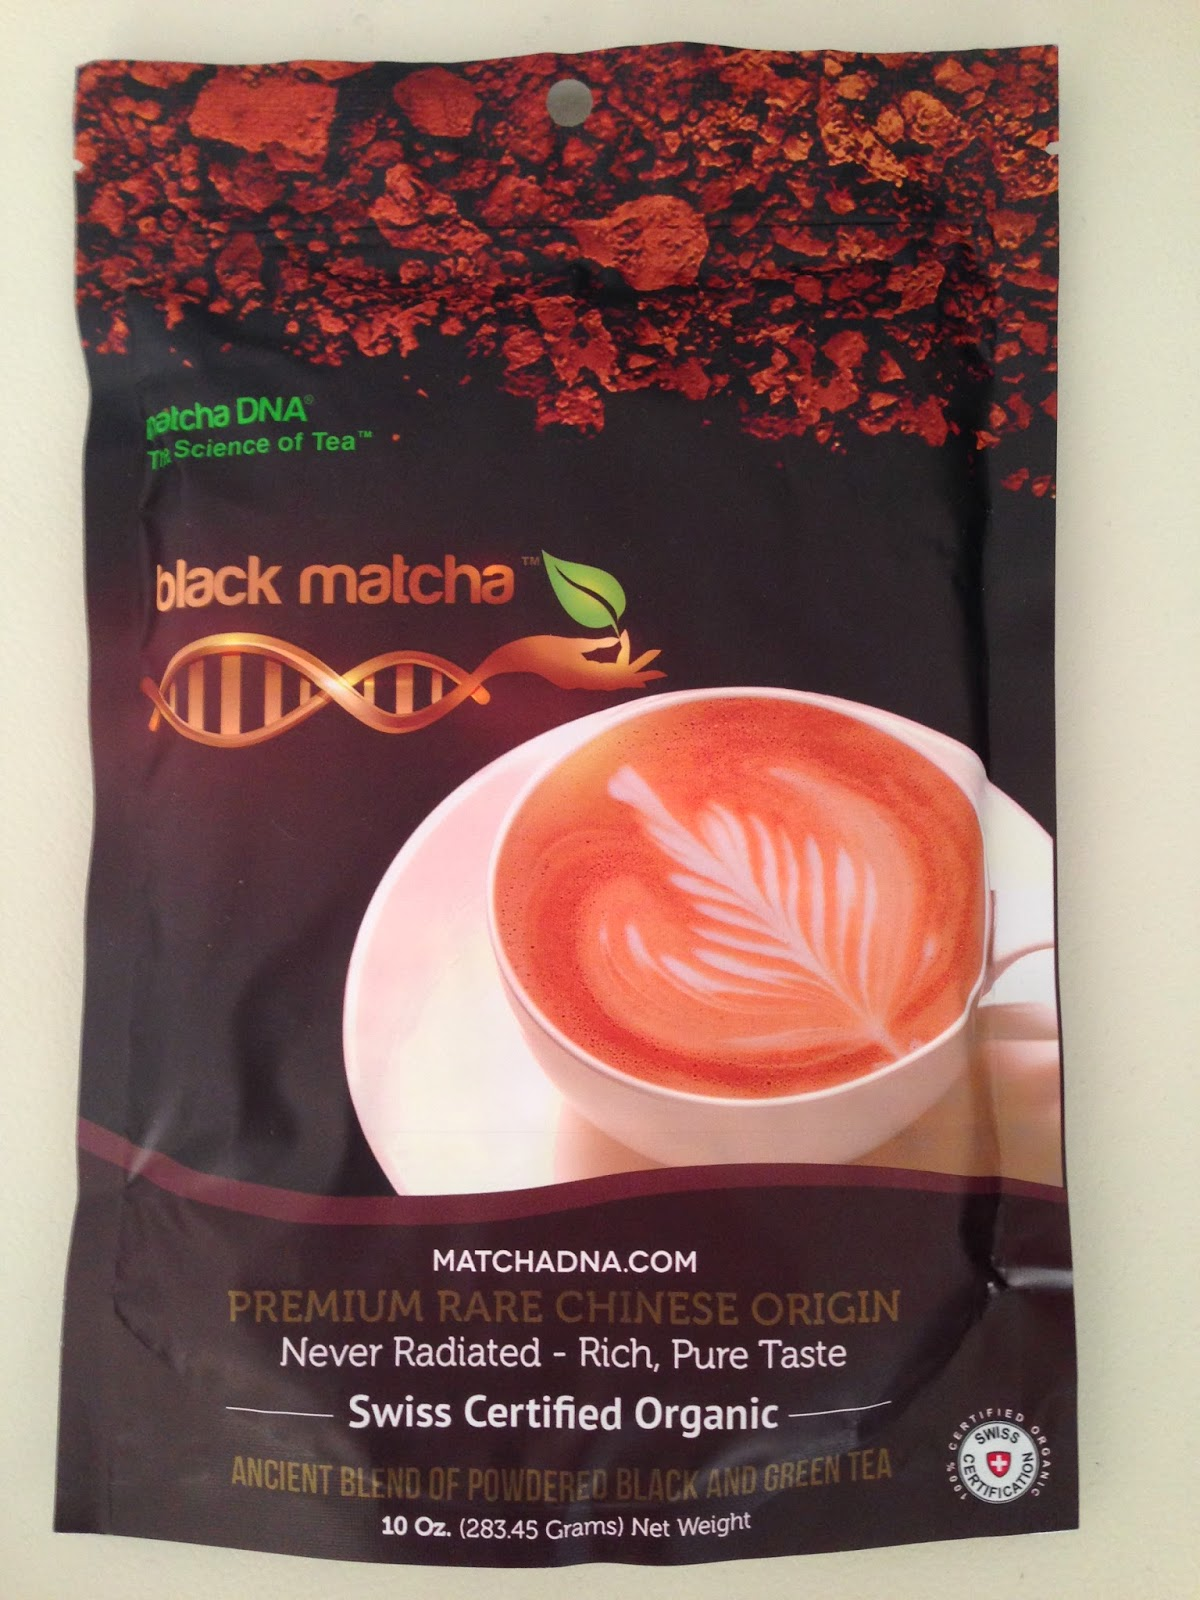 Black Matcha DNA Tea